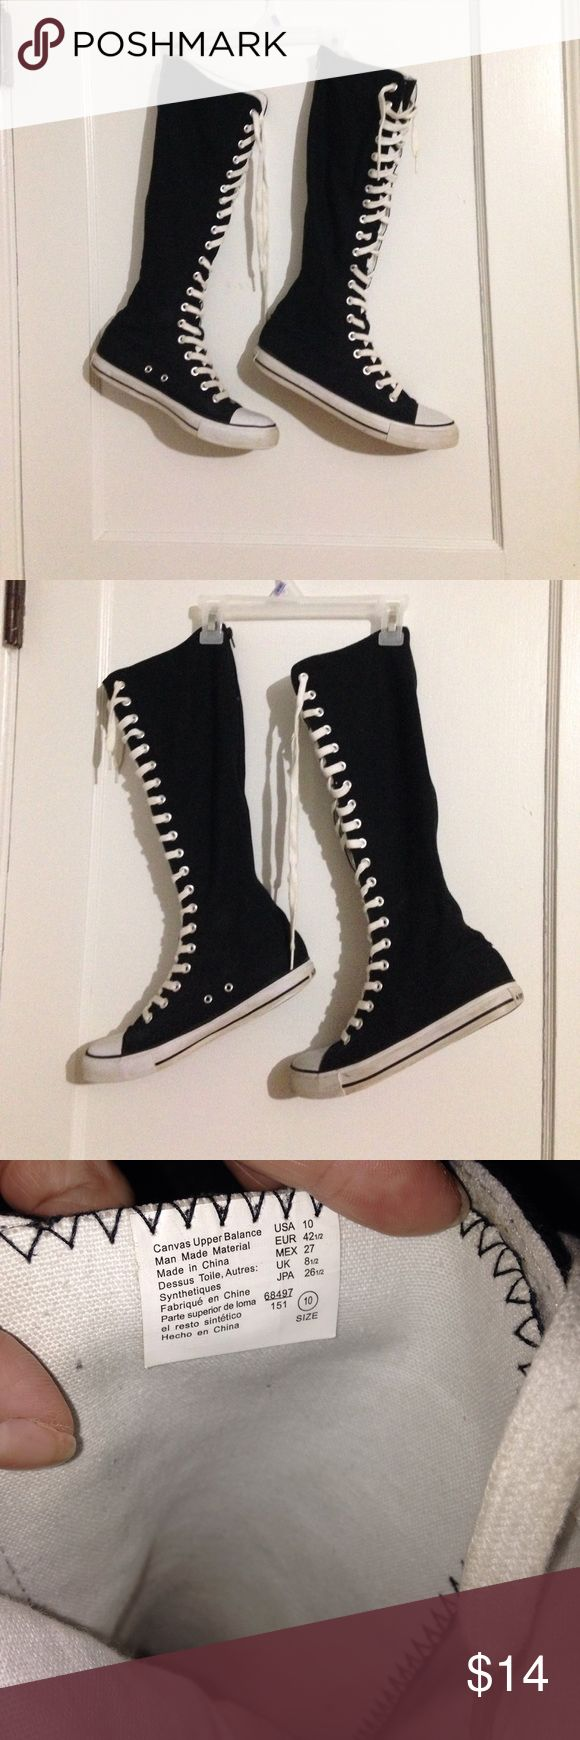 outstanding chuck taylor knee high sneakers